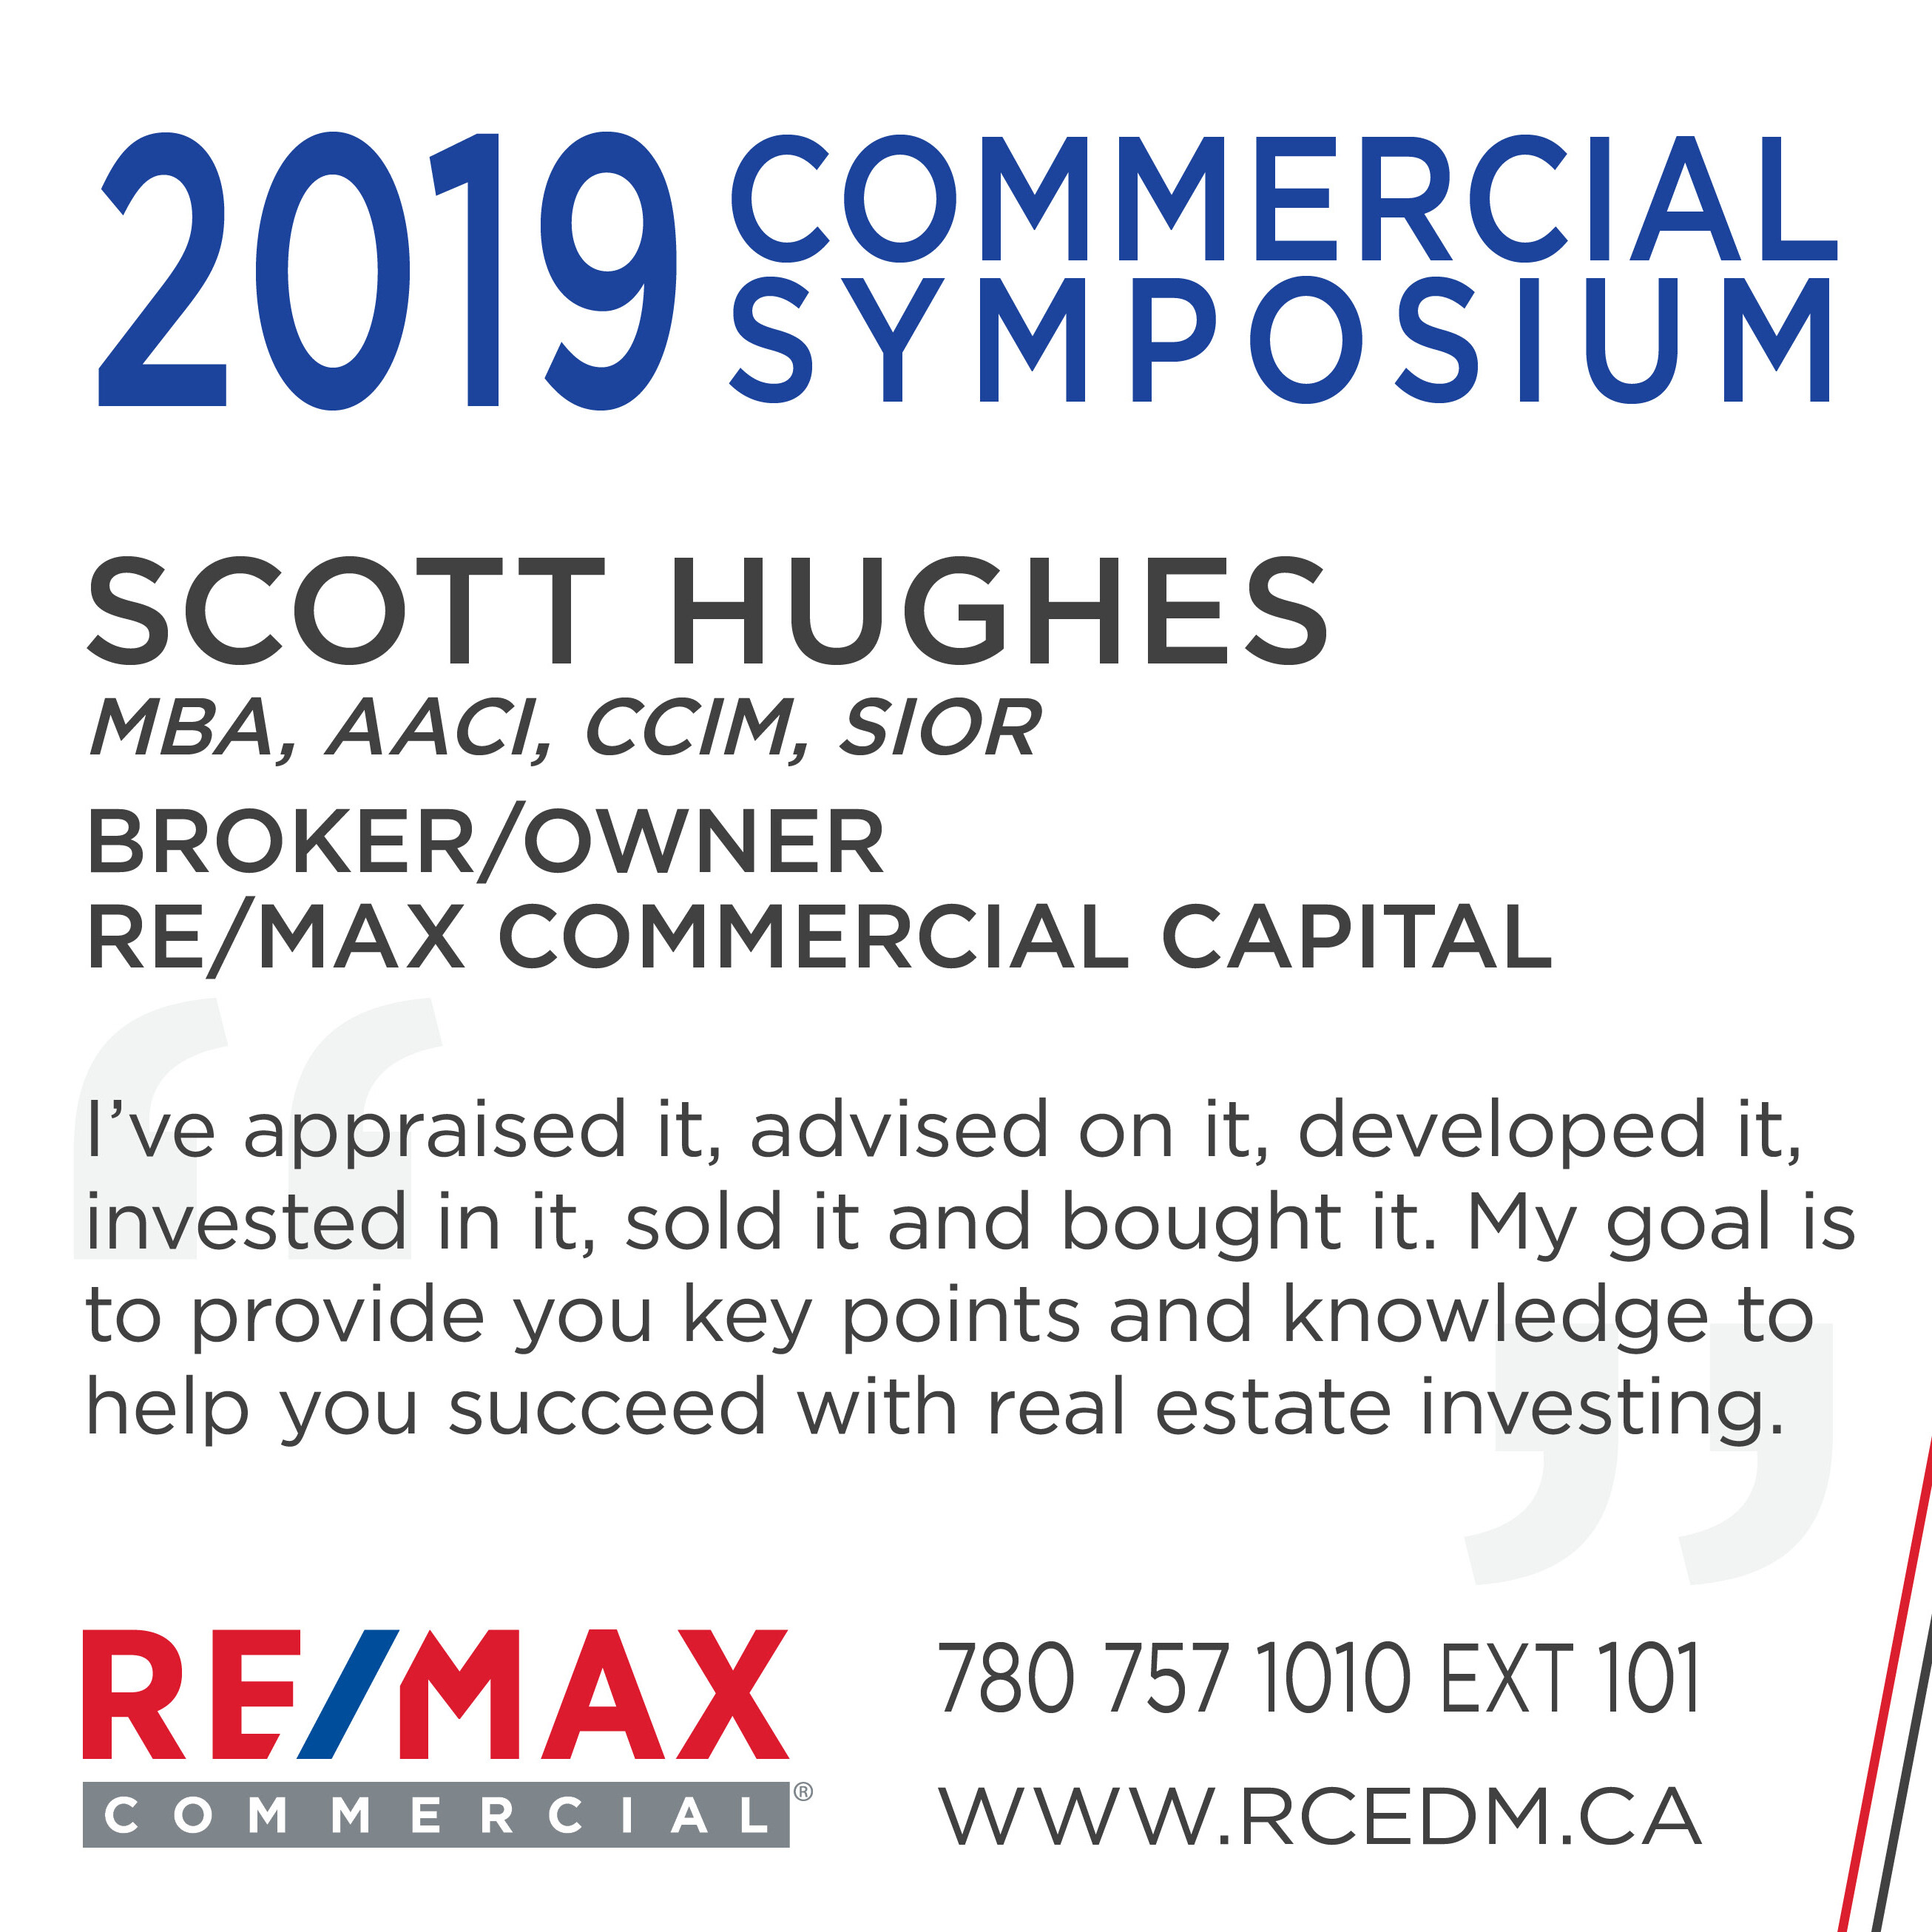 Investing in Real Estate – 2019 RE/MAX Commercial Symposium